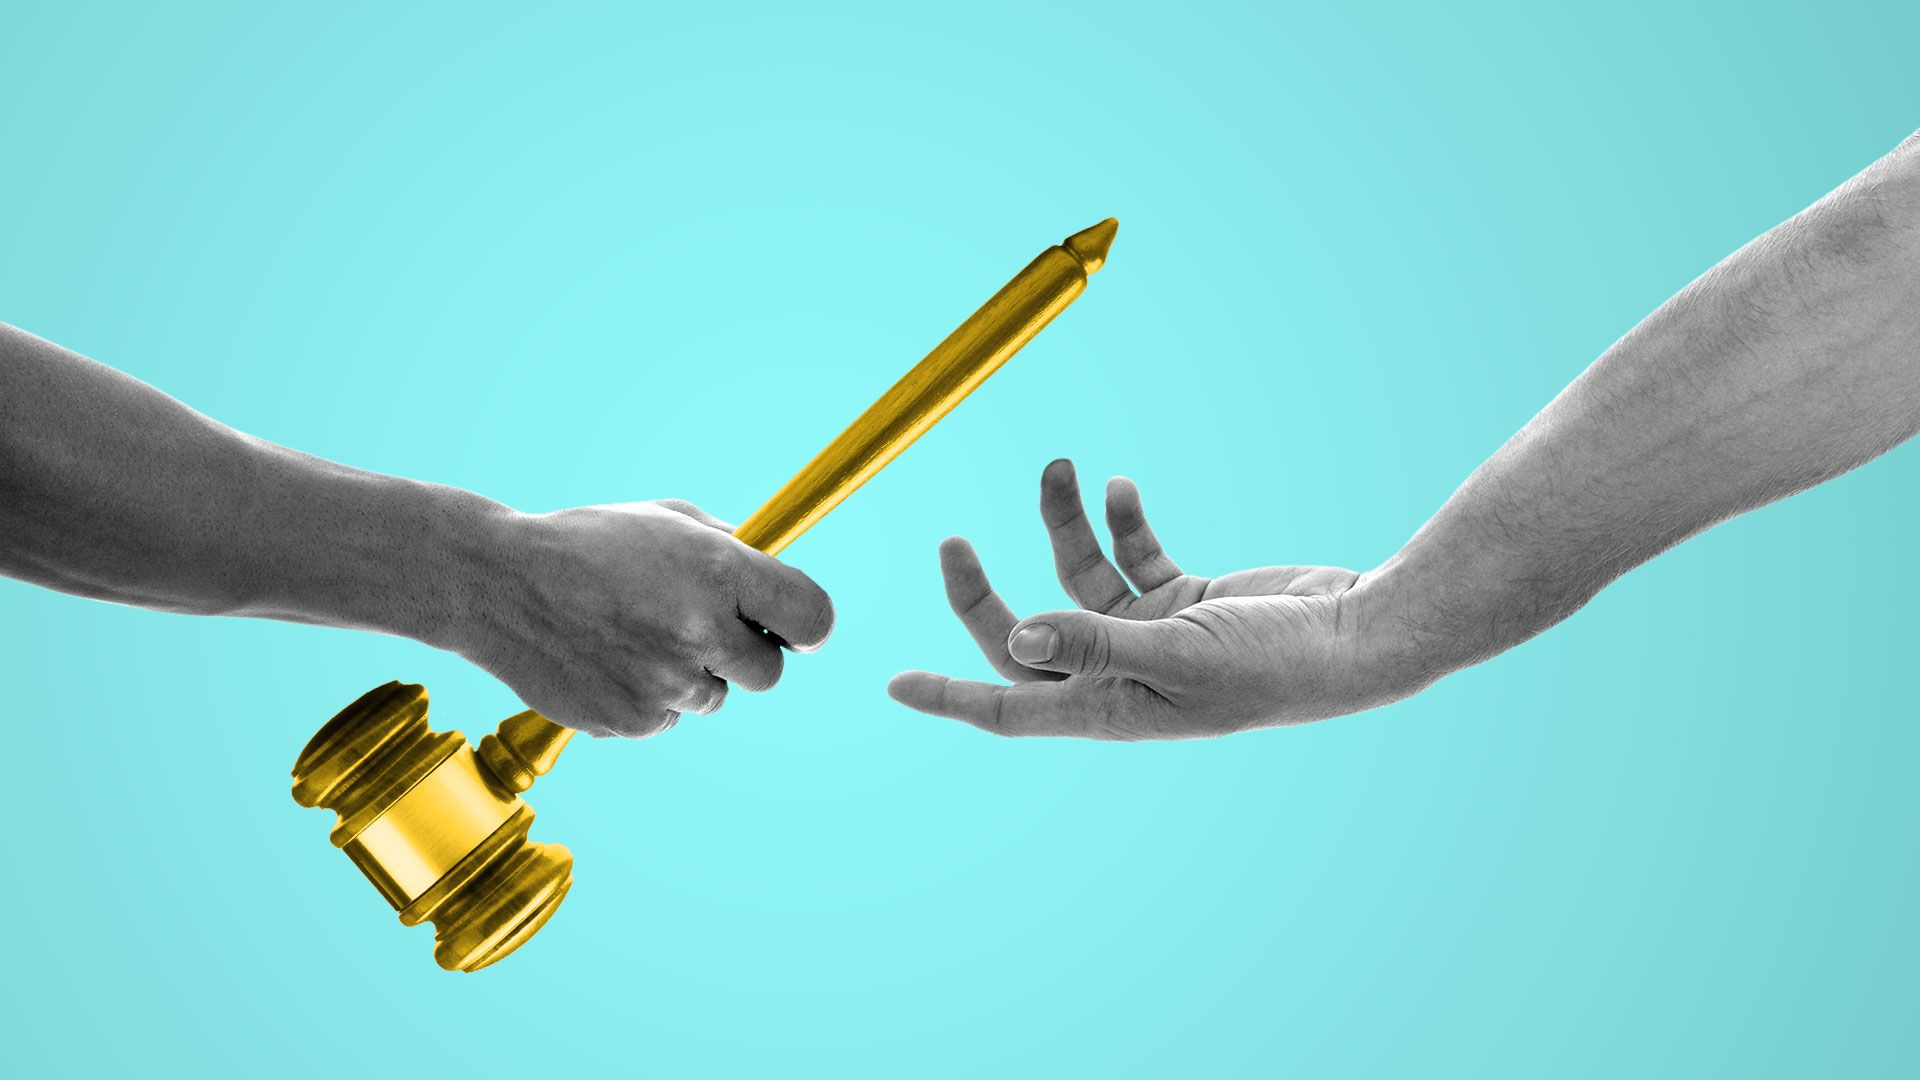 Illustration of two hands passing off a judge's gavel as if it were a baton.